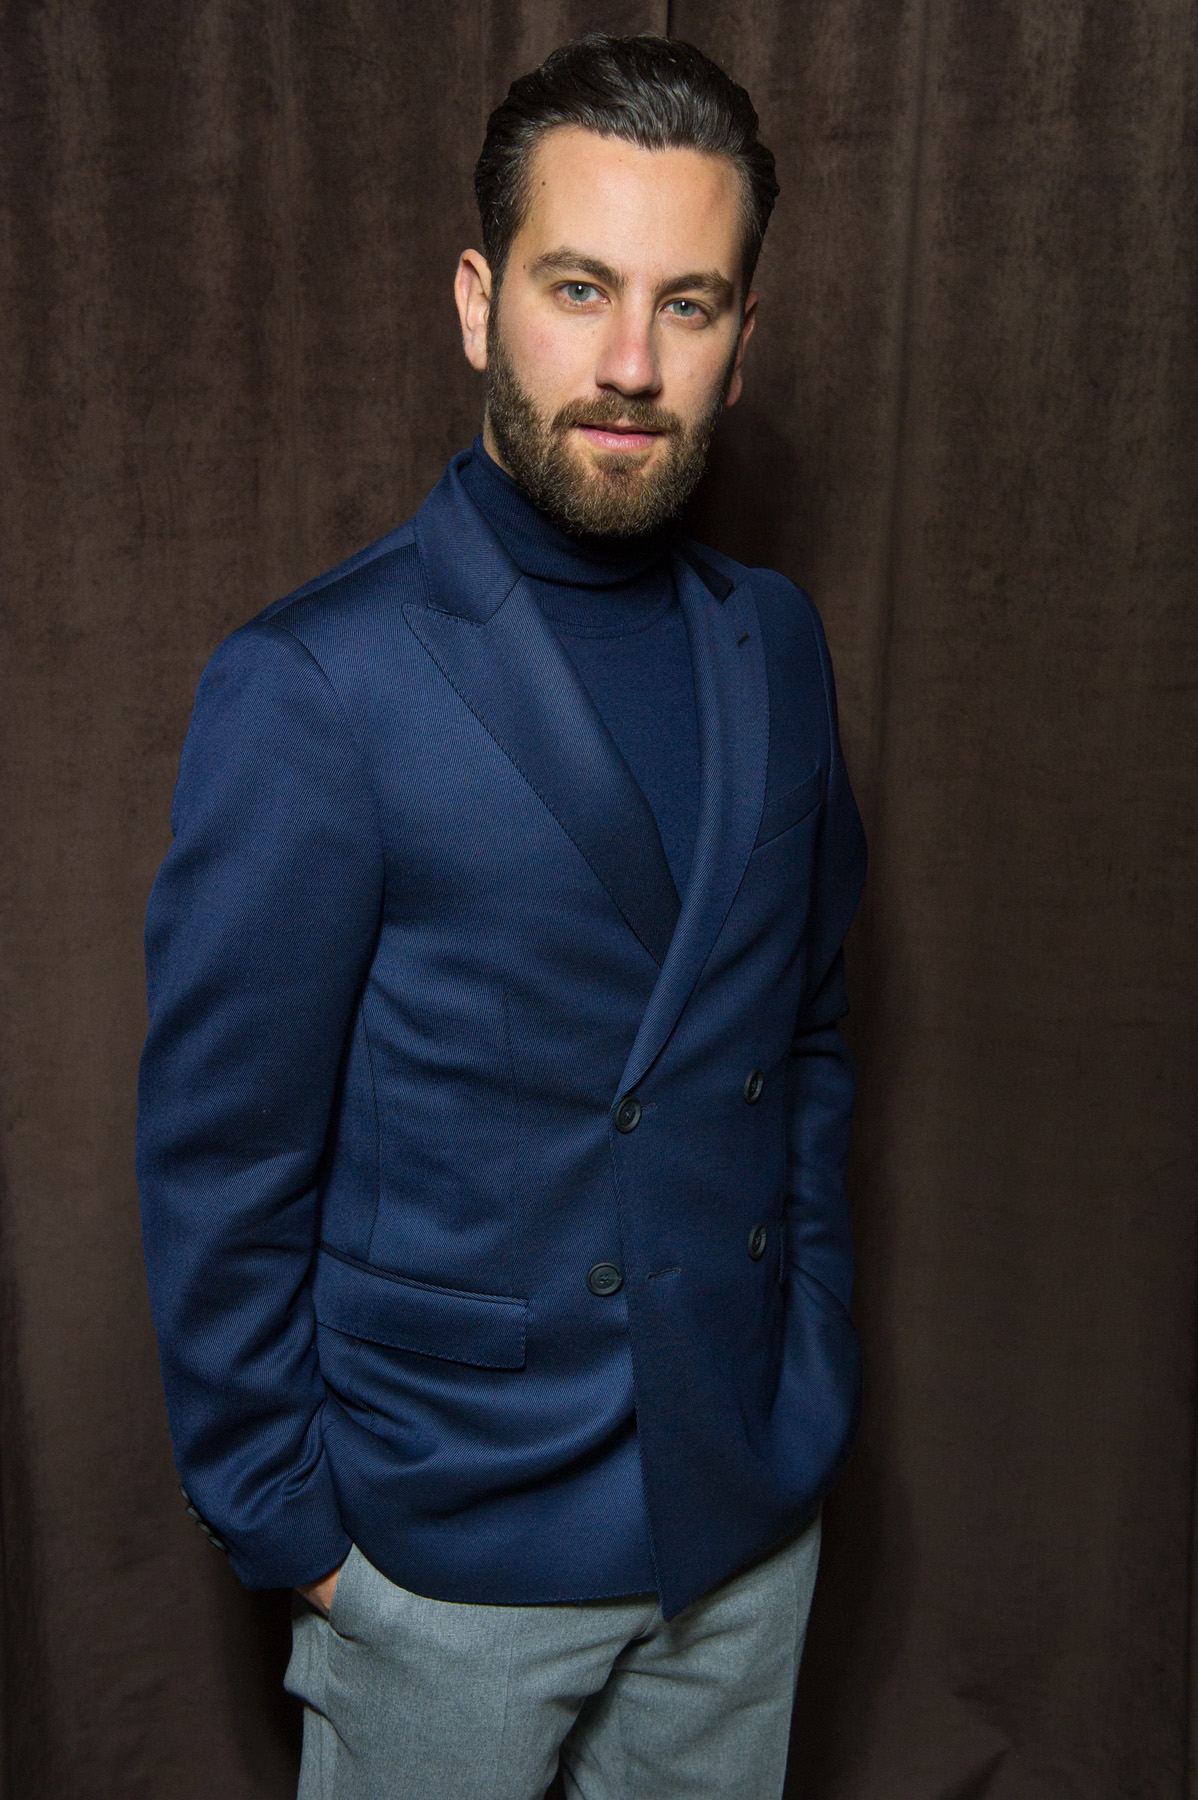 Matthew Zorpas in HUGO BOSS at the BOSS Menswear Fall/Winter 2017 collection presentation